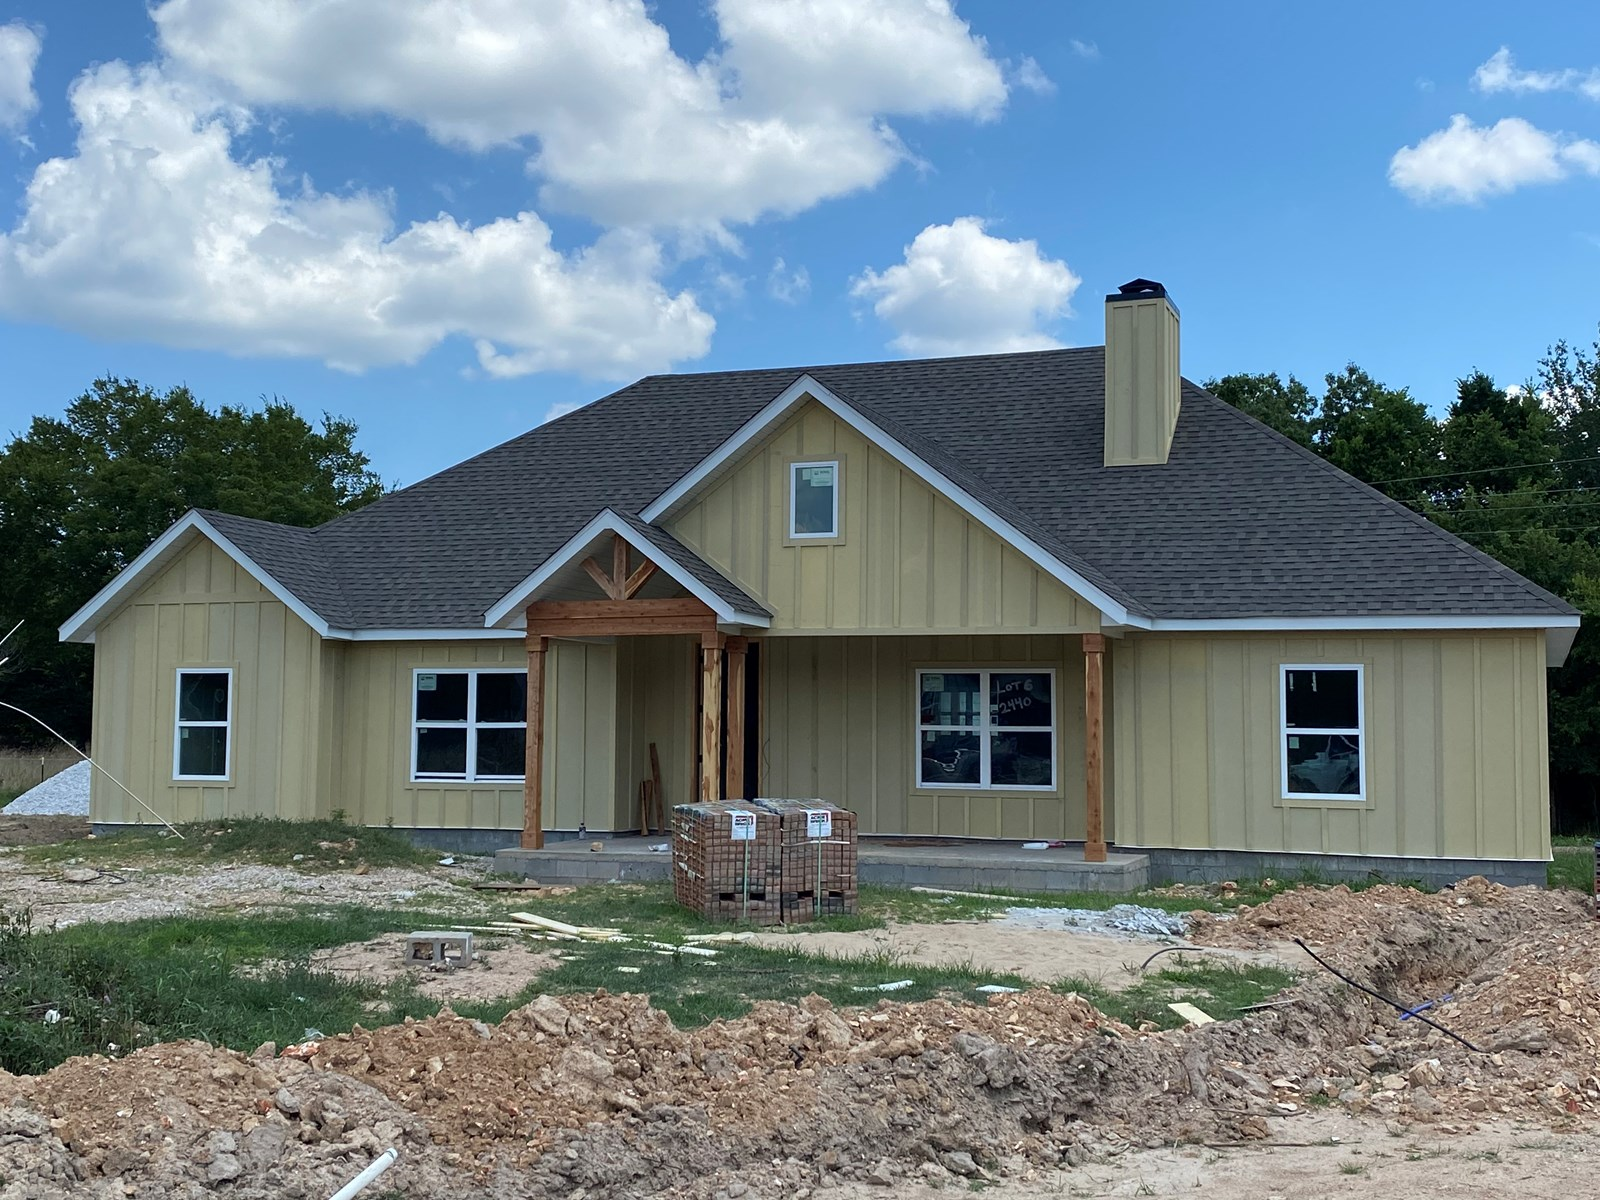 New Construction Home For Sale Across From Pea Ridge Park